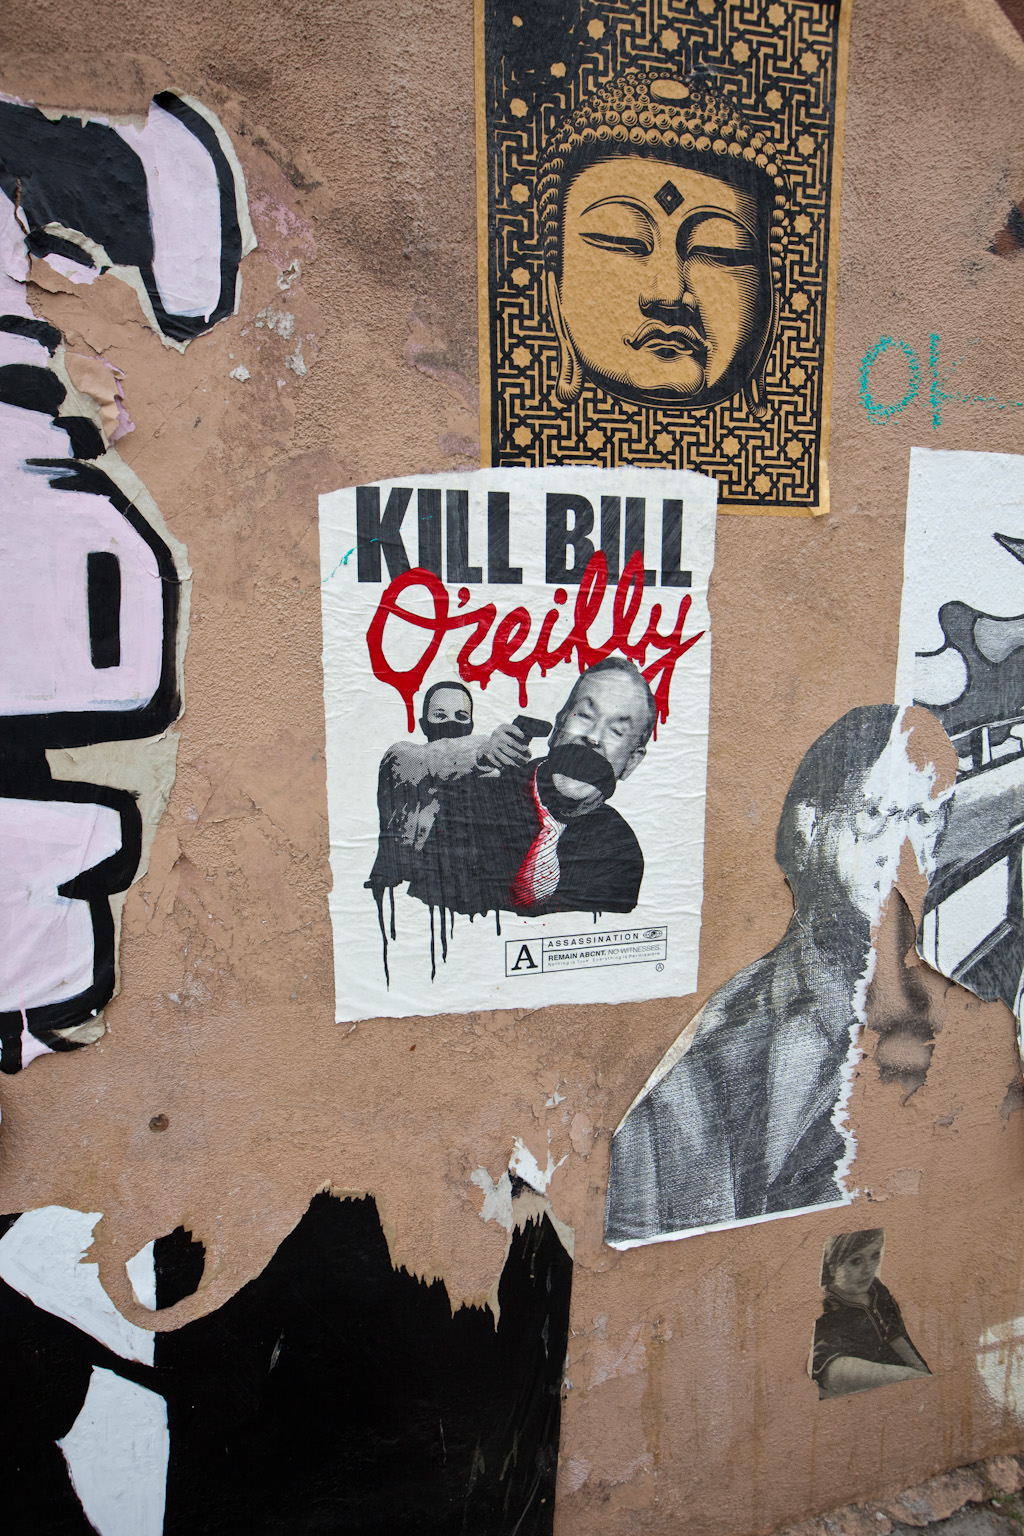 Venice: kill bill oreilly